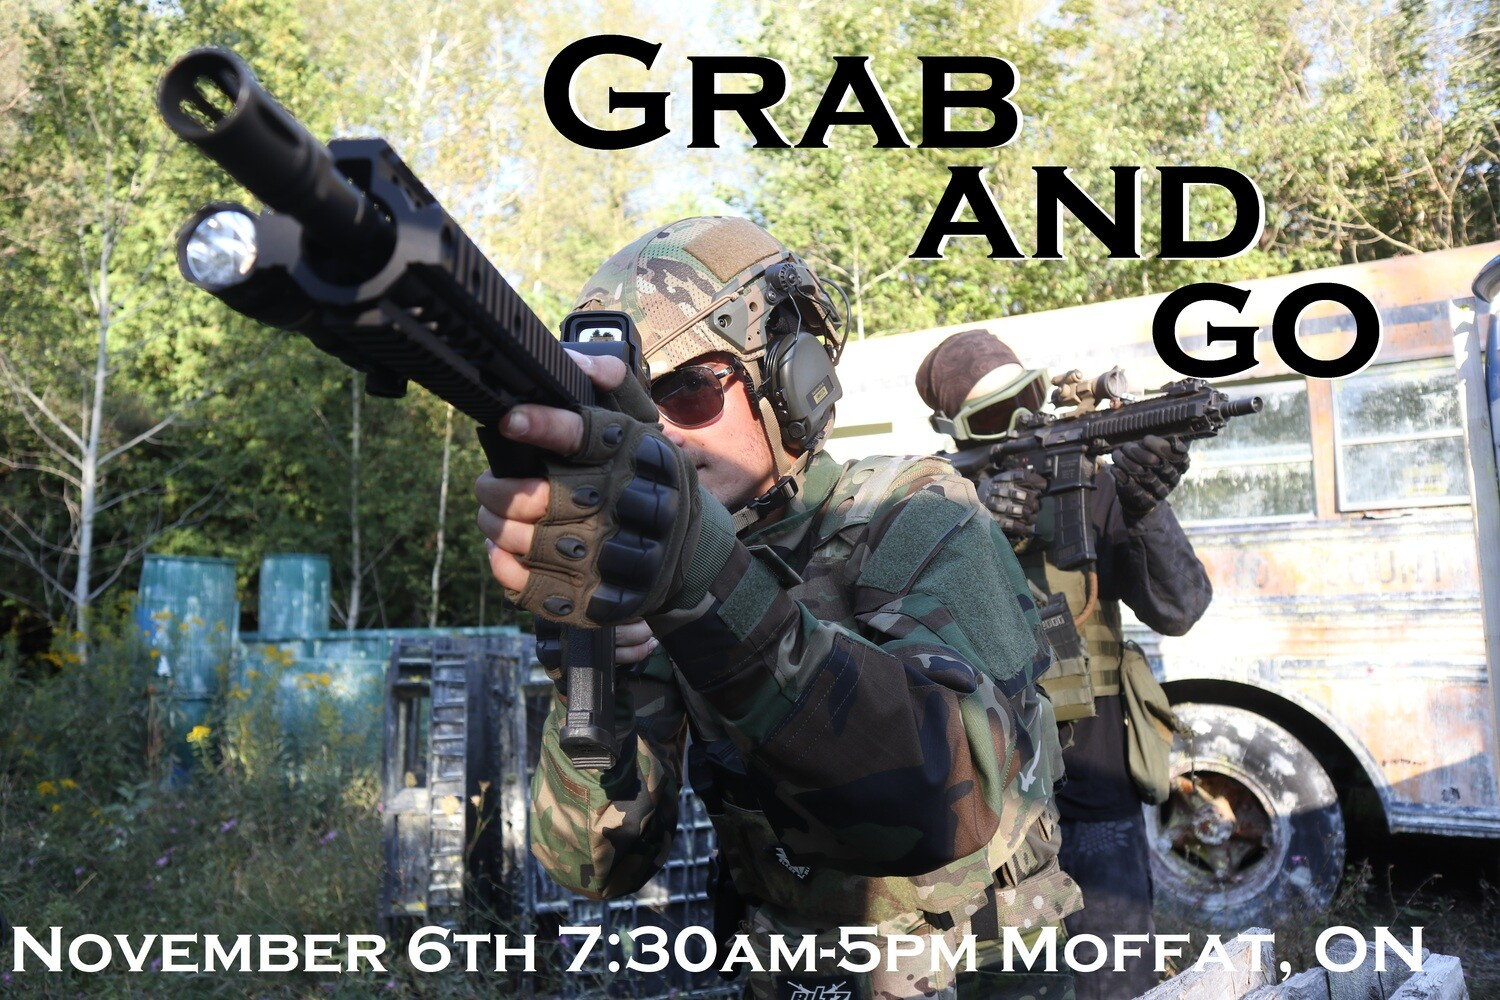 """Operation: """"Grab and Go"""" - November 6th, 2021 Moffat, ON Fee - $60.00"""